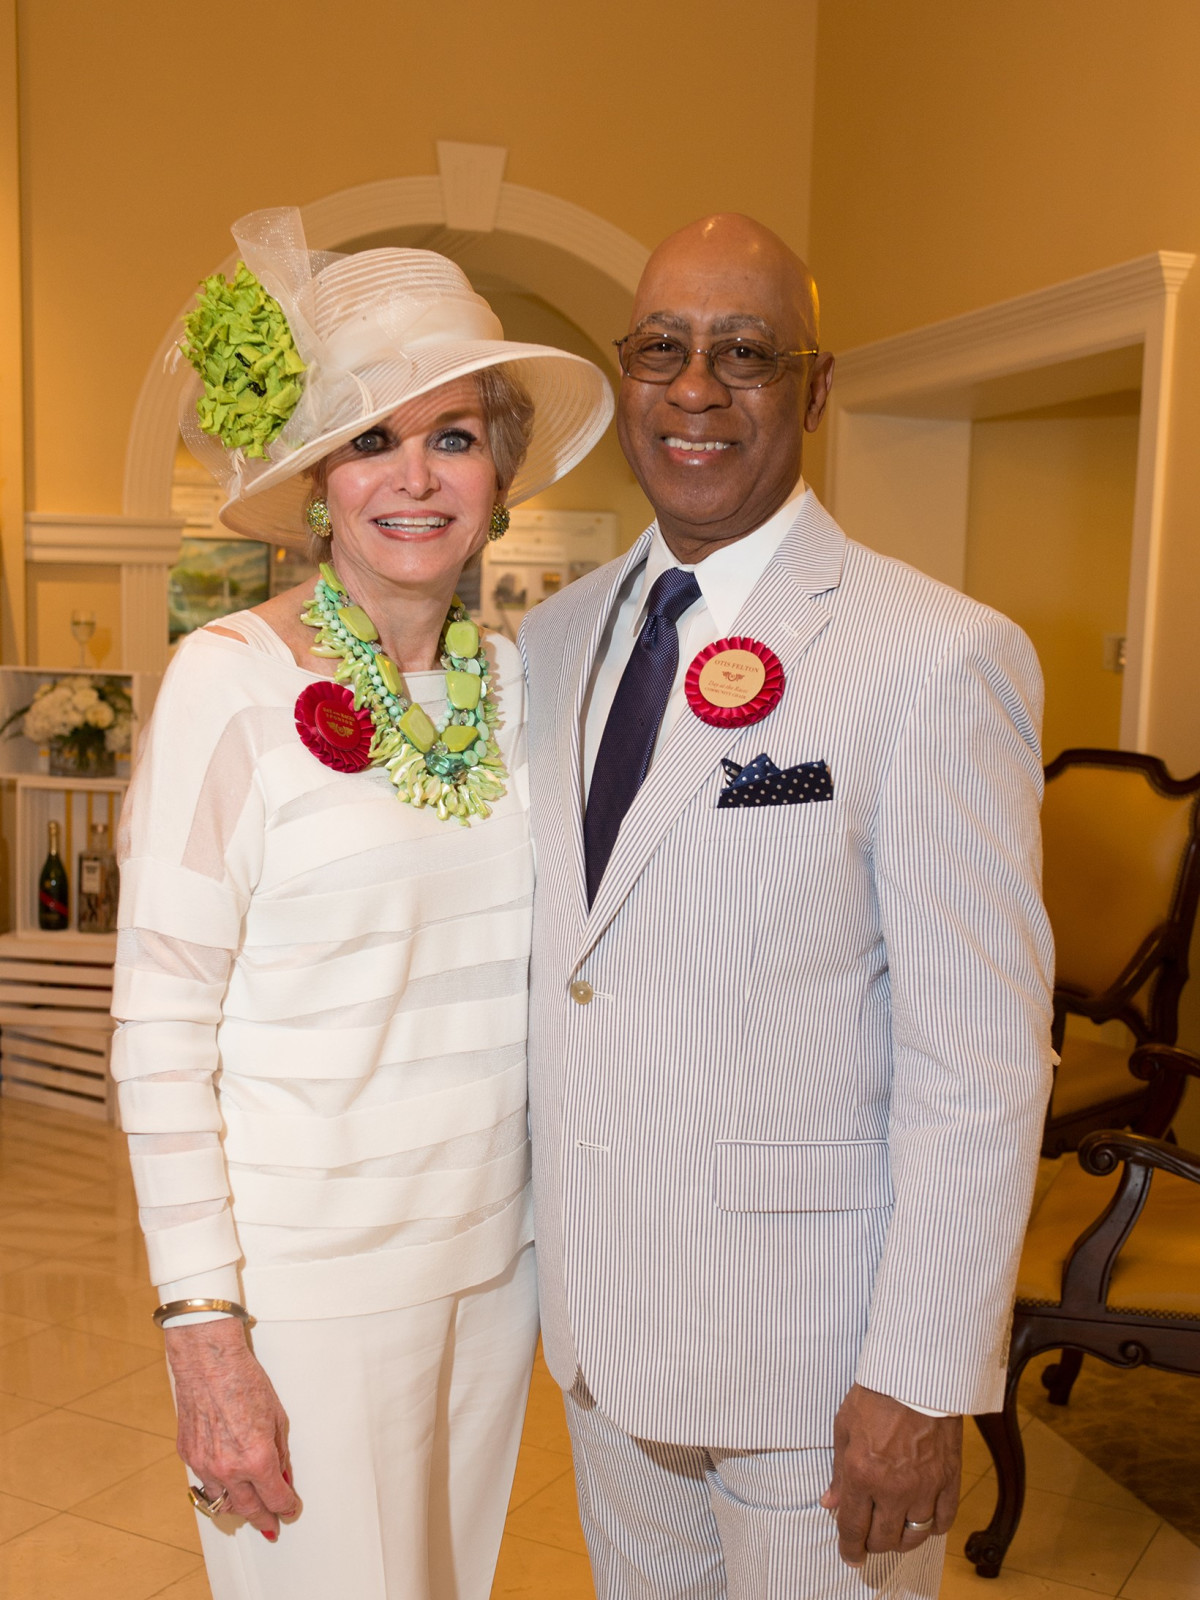 Day at the Races 2018, Carmaleta Whitely, Otis Felton